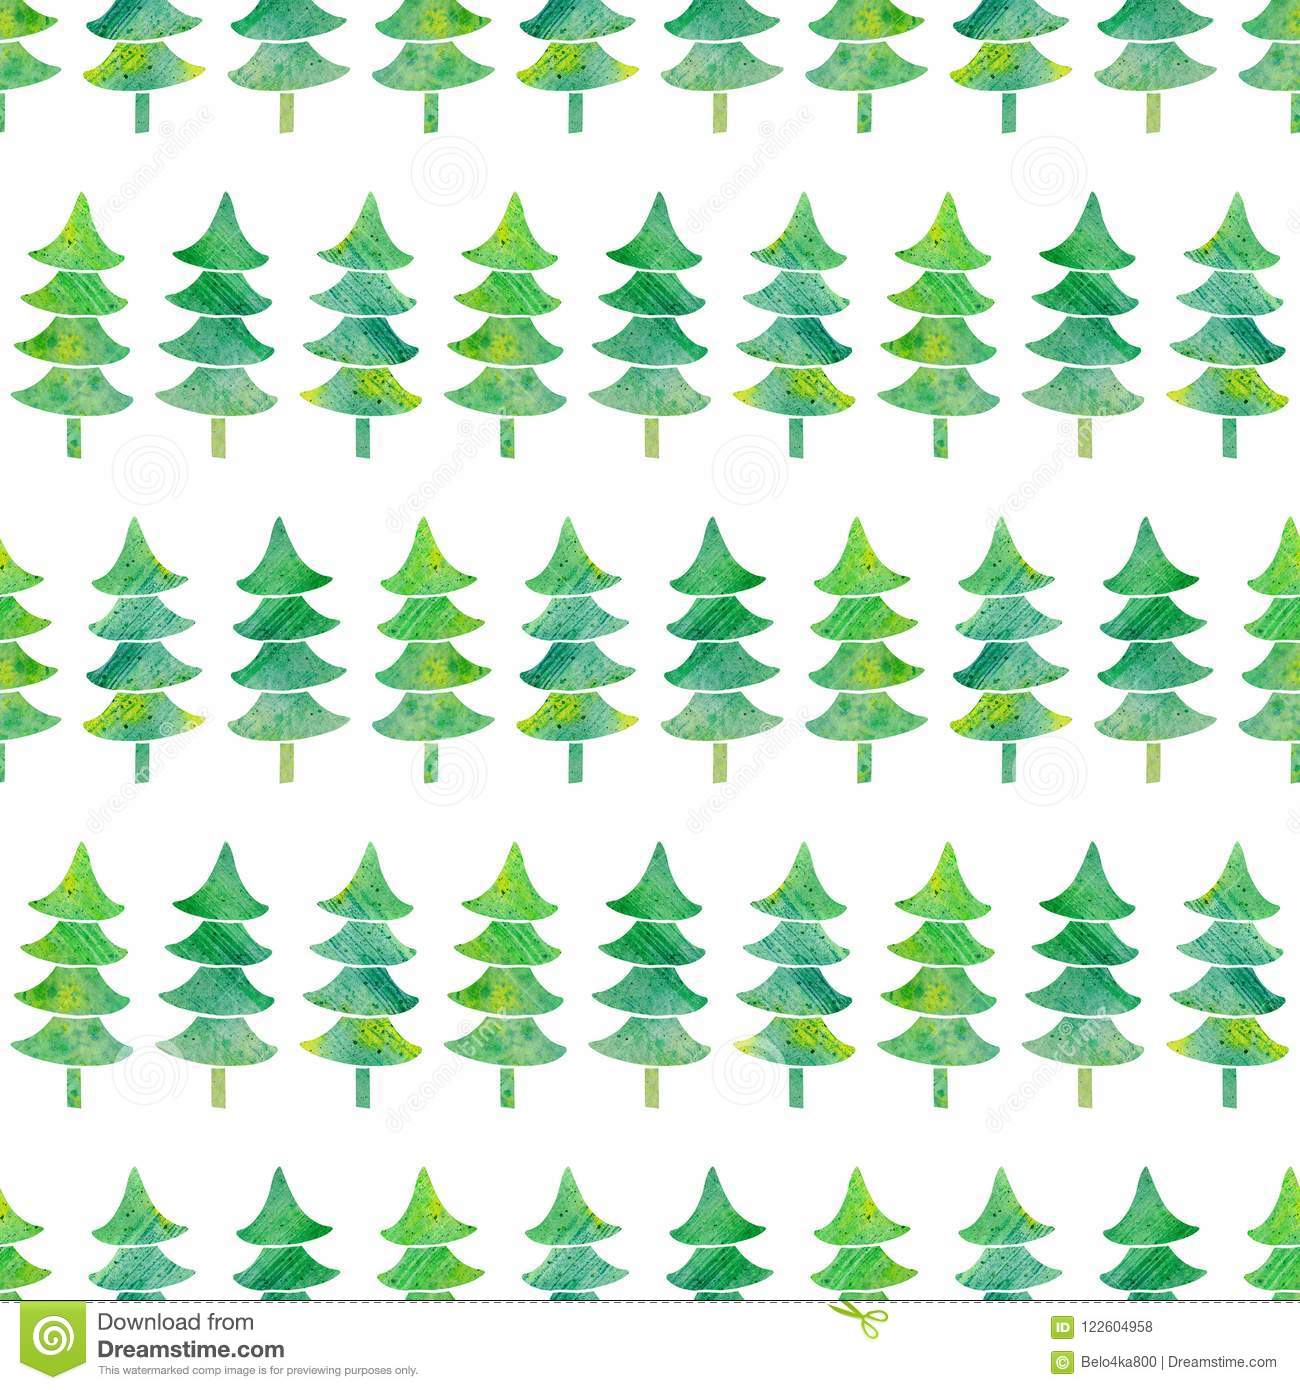 Watercolor Seamless Pattern With Textured Xmas Trees. Stock